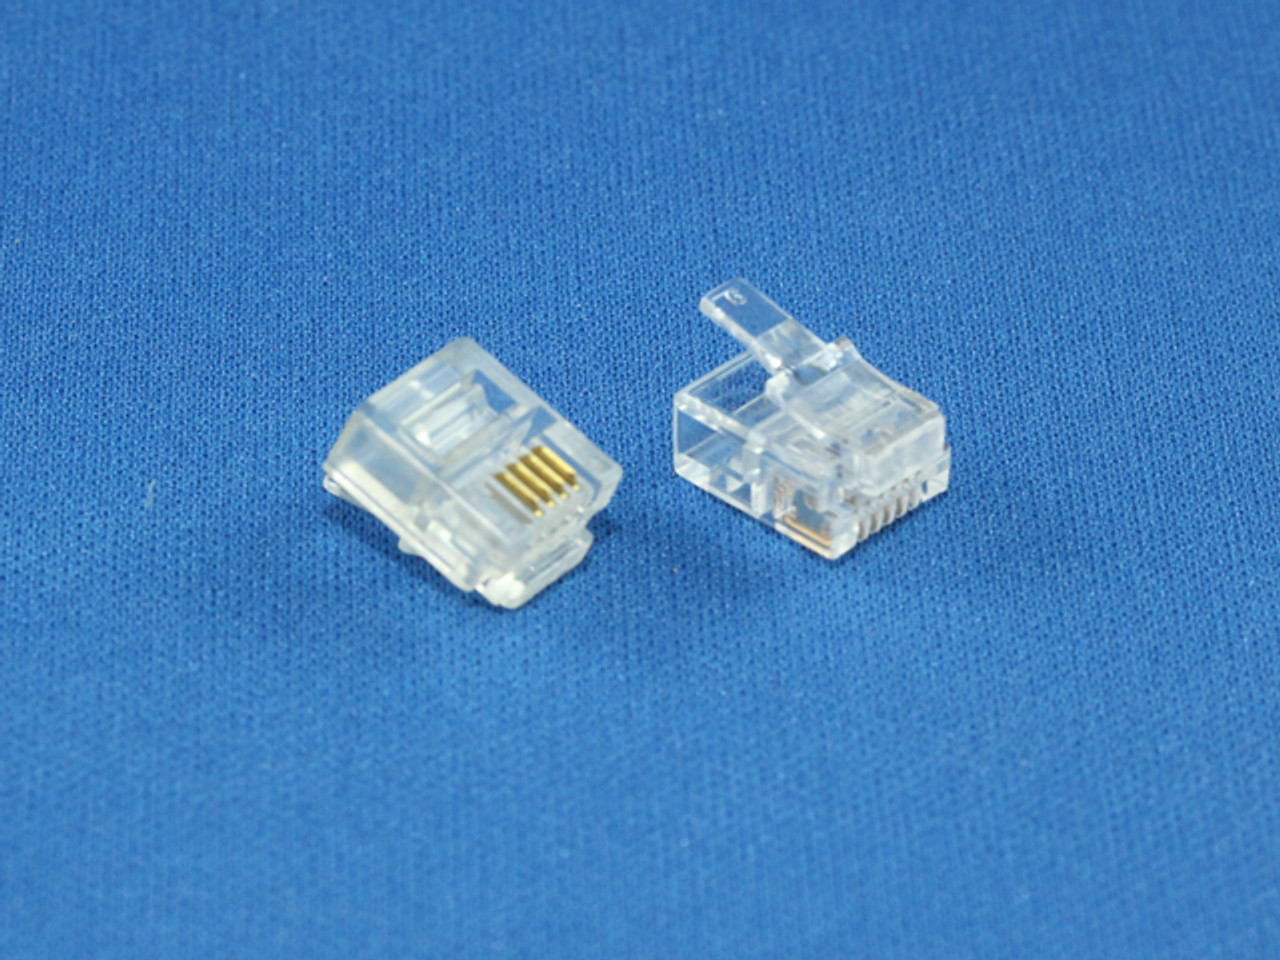 Product image for Telephone Connector 6P4C | CX Computer Superstore